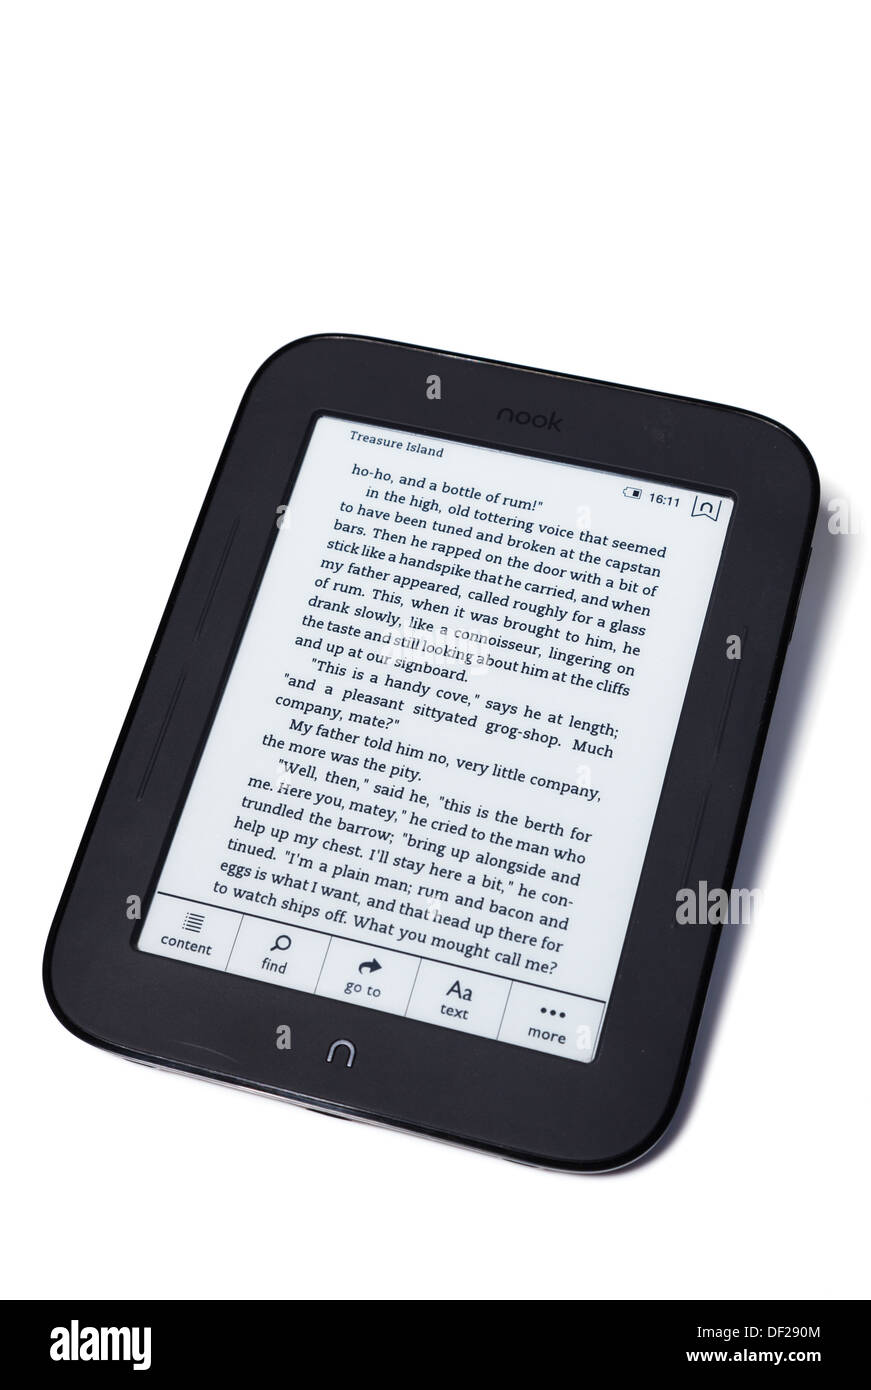 Studio nook ereader sur blanc avec goto content menu. Photo Stock